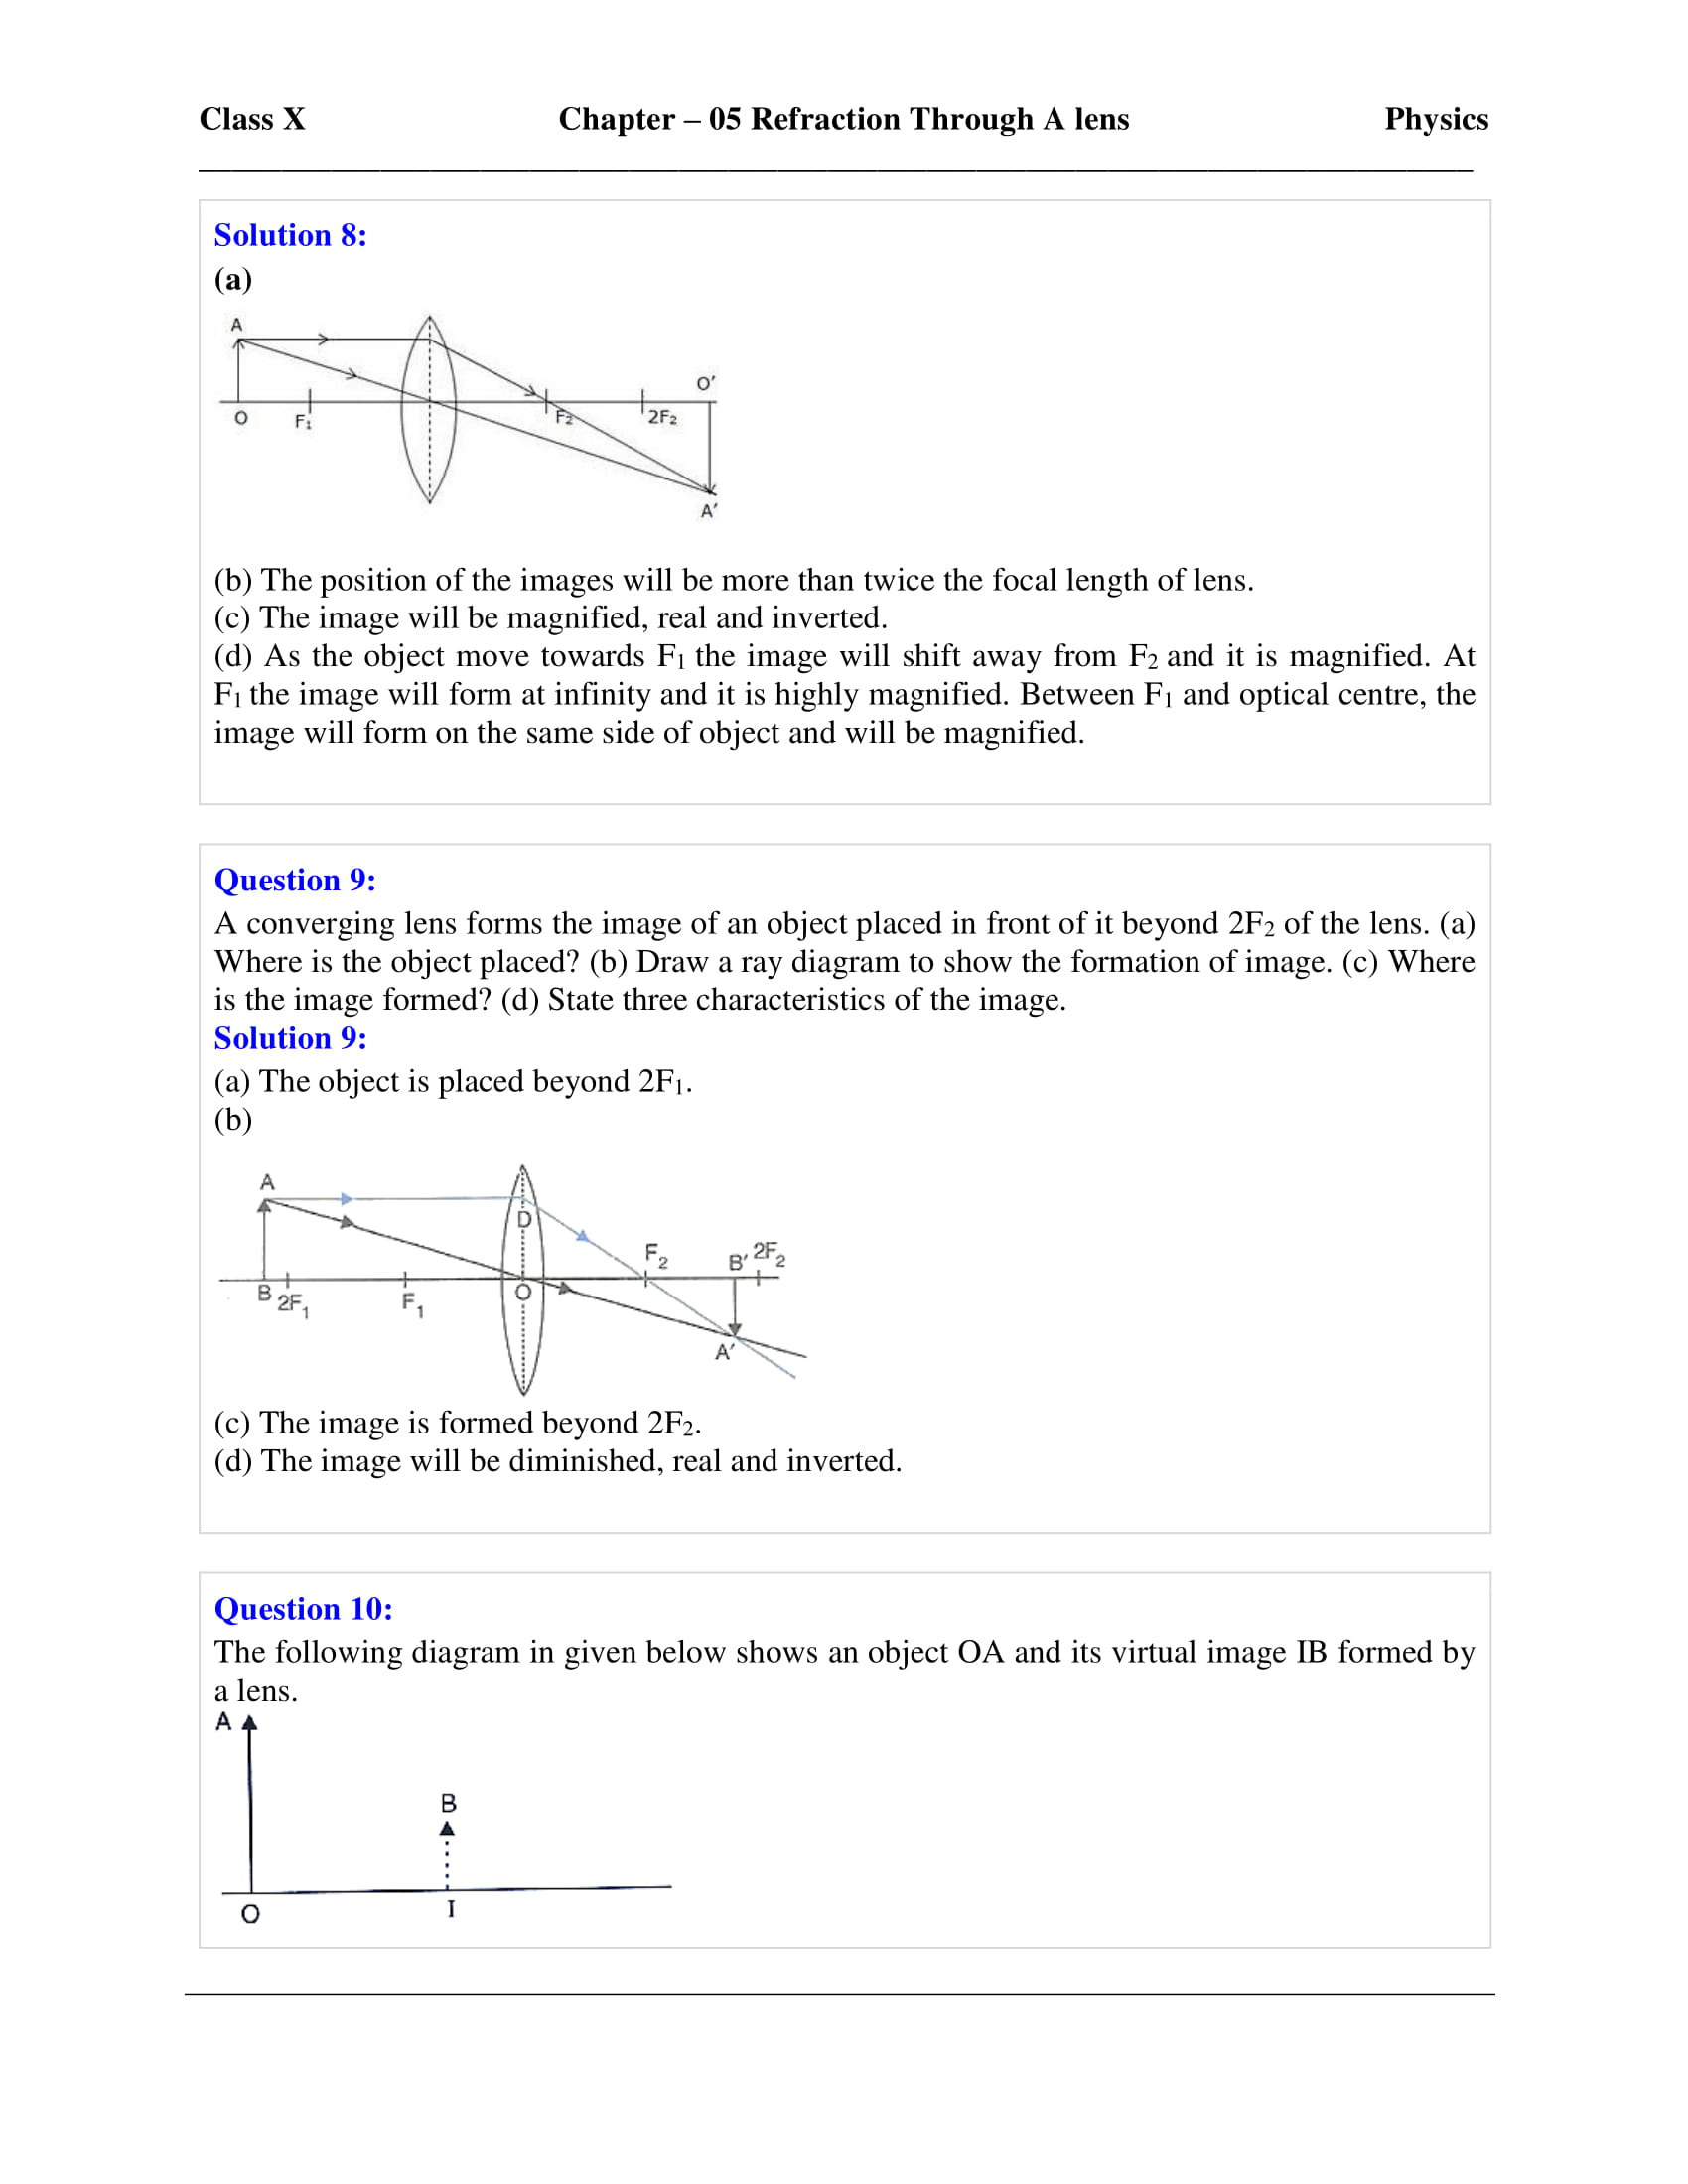 icse-selina-physics-solutions-class-10-chapter-5-refraction-through-a-lens-20